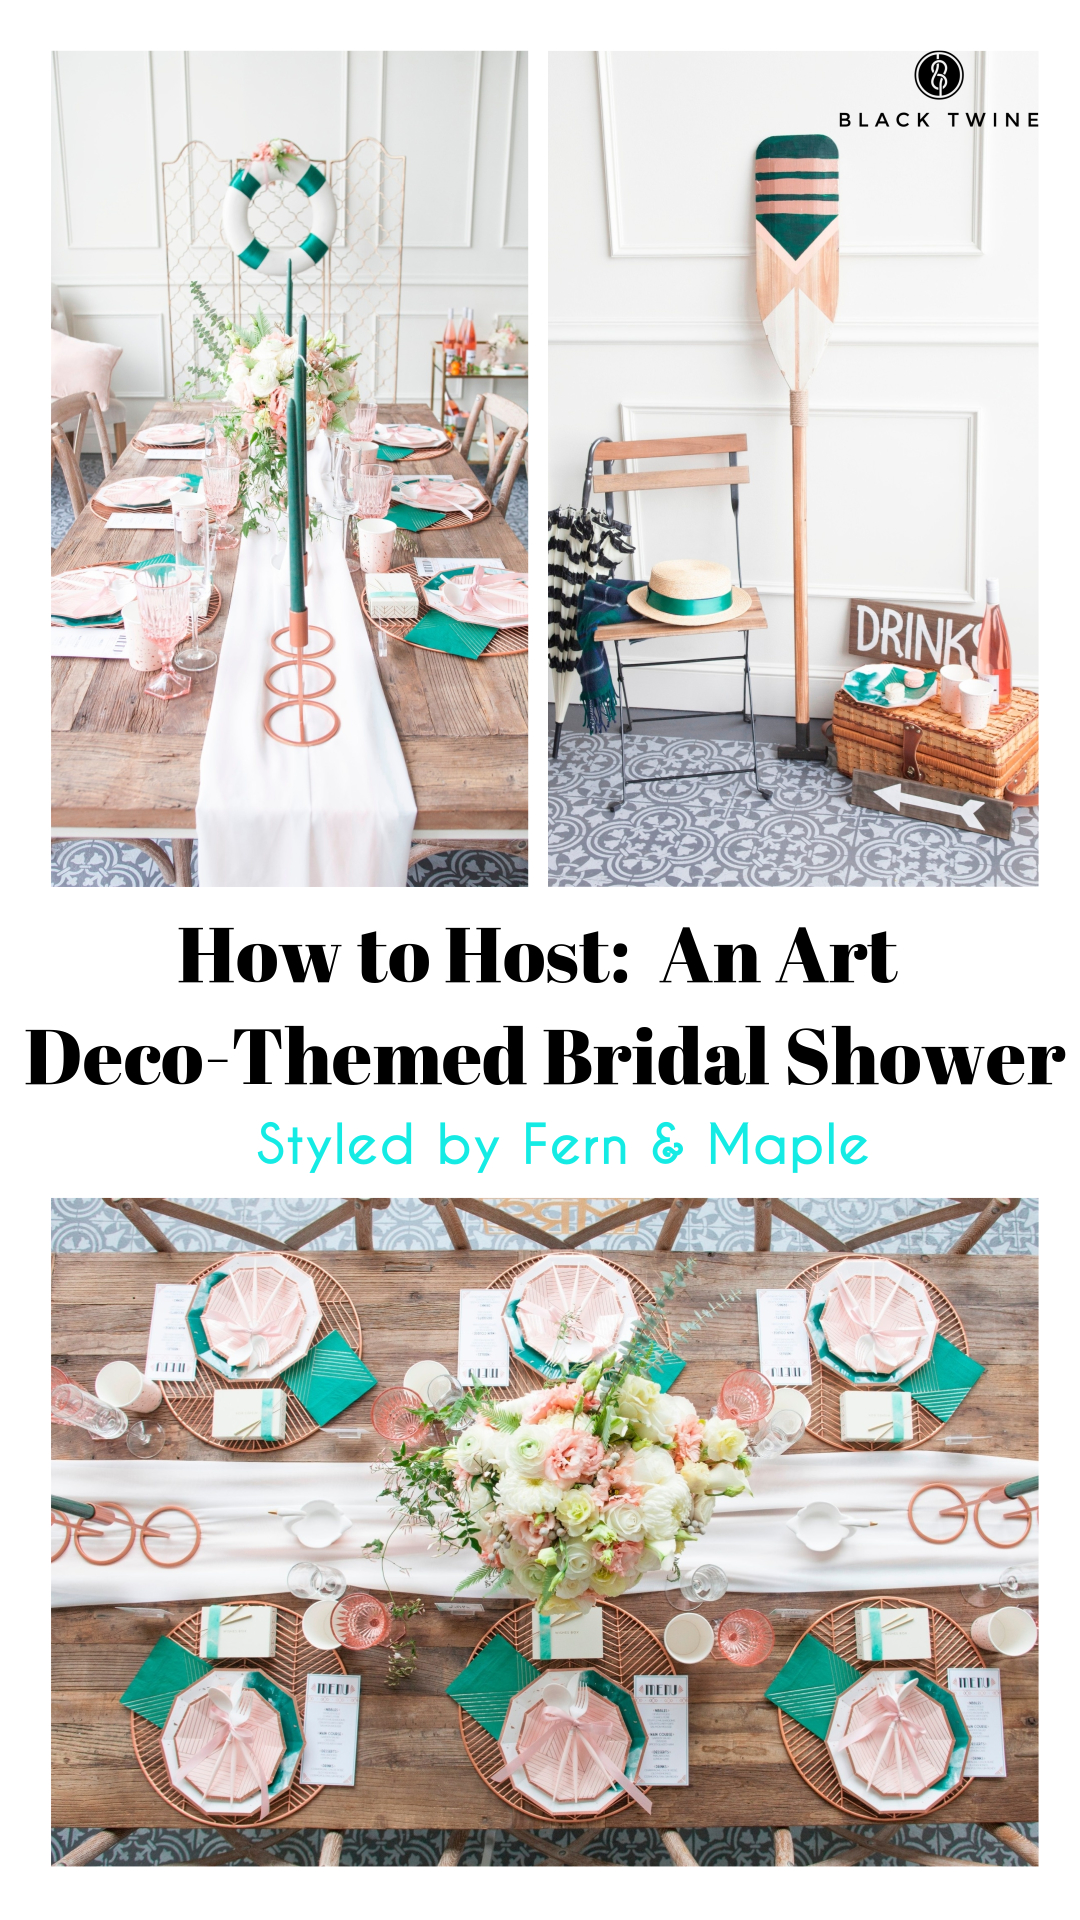 How to Host an Art Deco Boathouse Bridal Shower Styled by Fern & Maple | Black Twine